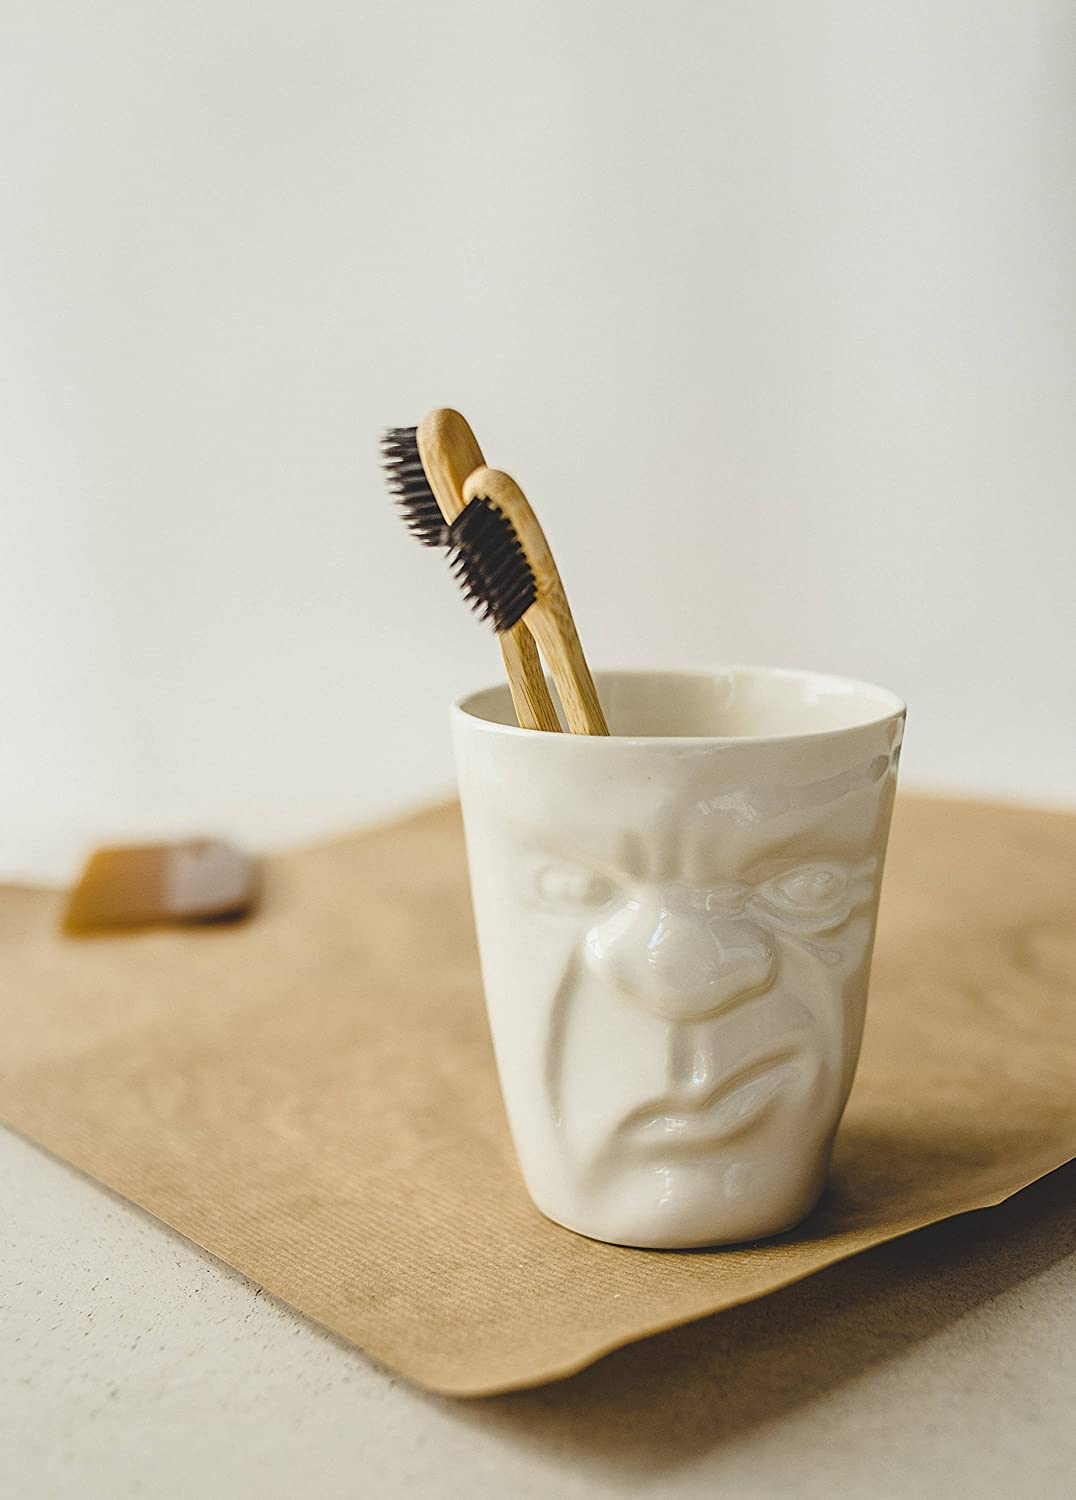 Modern white porcelain cup with a funny grumpy face for tea and cofee or toothbrushes pencils and makeup brushes storage by SIND studio